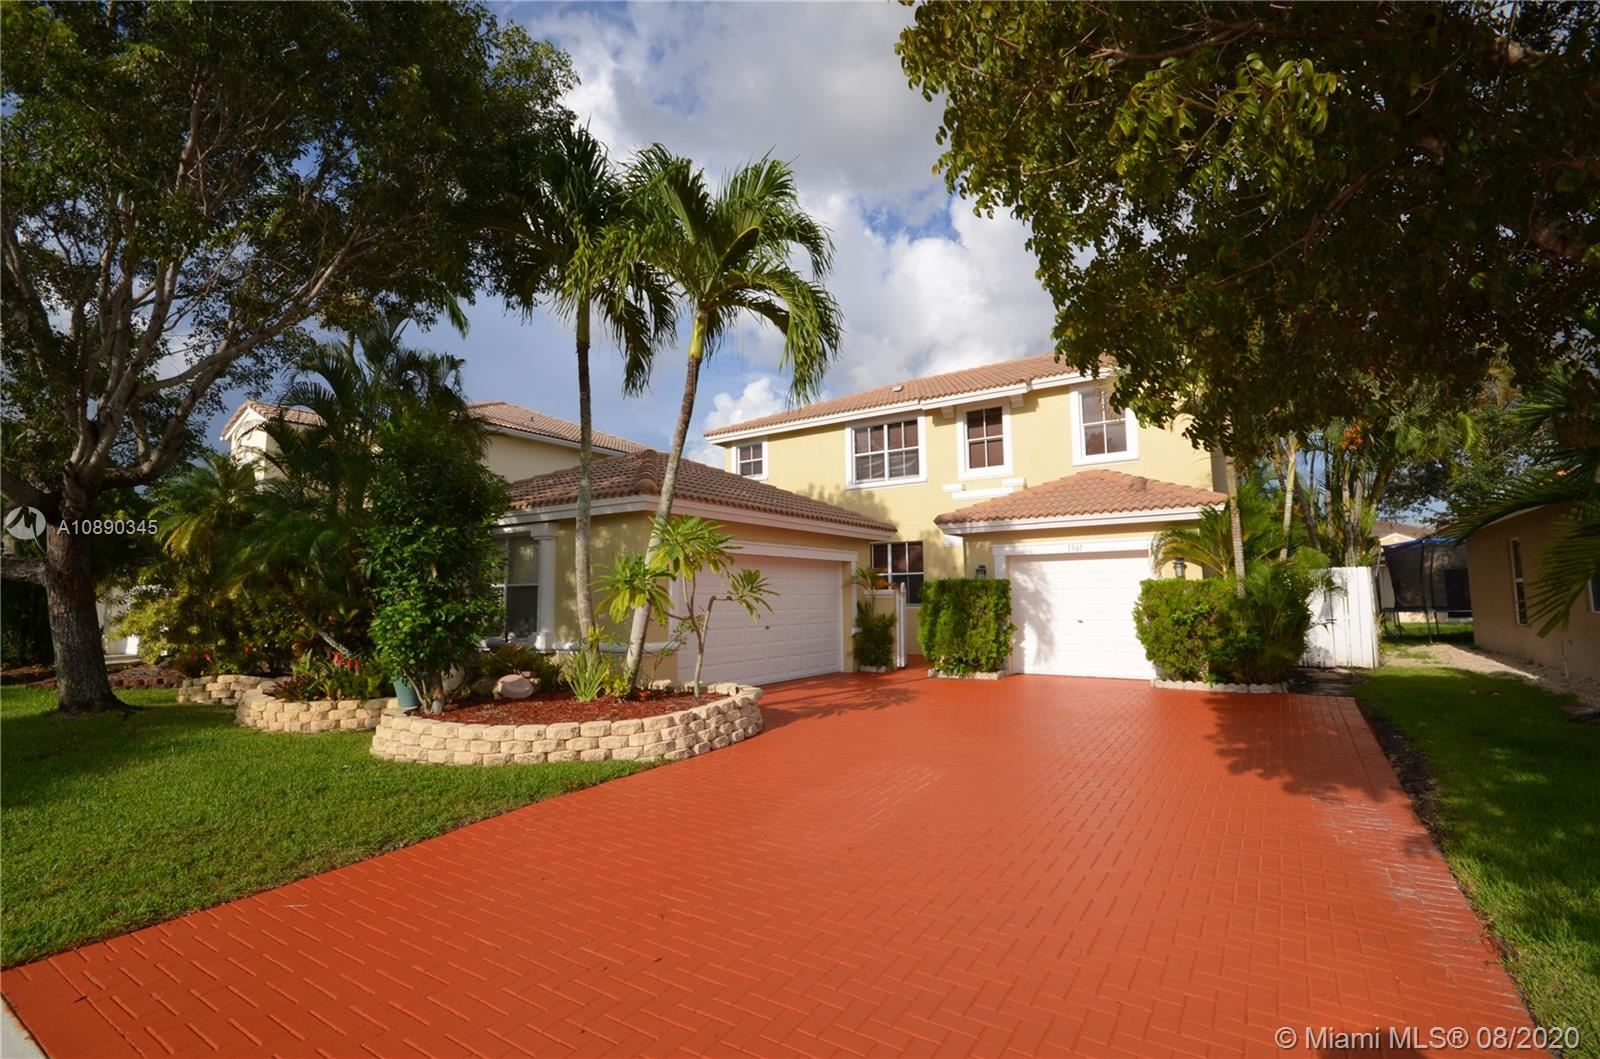 1561 SW 187th Ave, Pembroke Pines, FL 33029 - #: A10890345